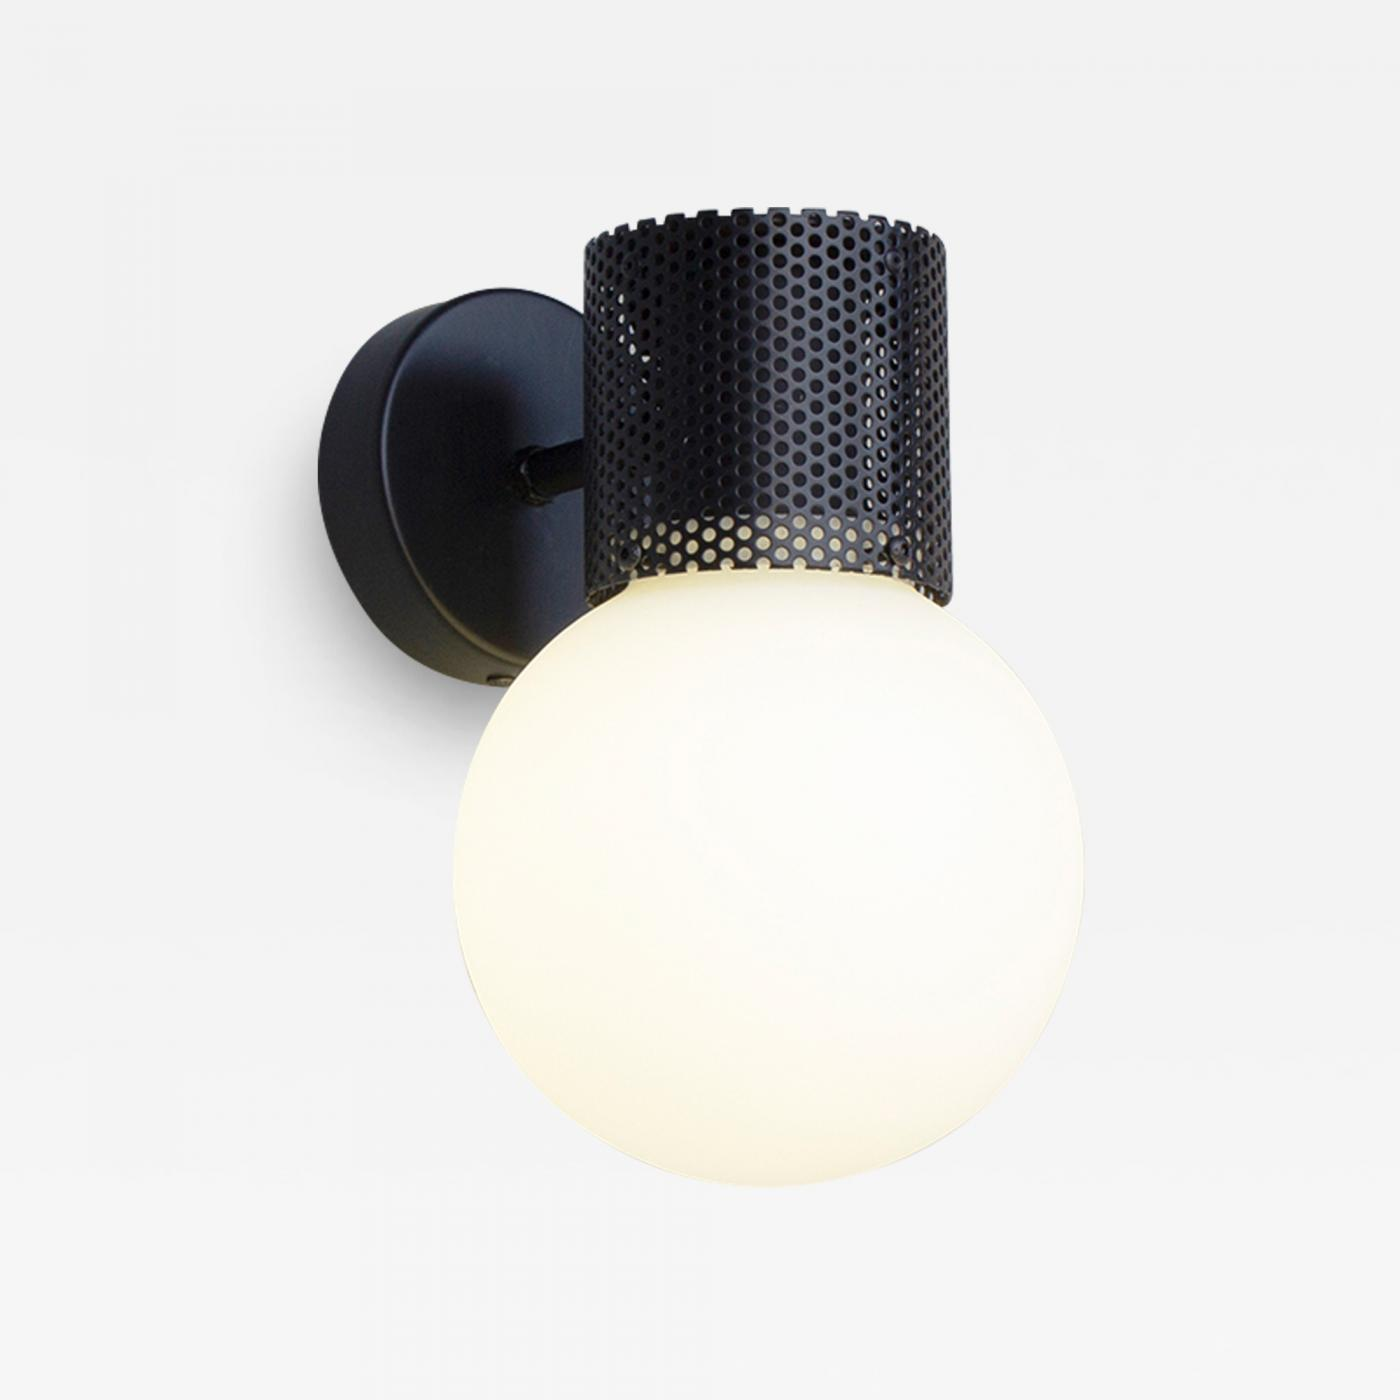 B Td Perf Wall Sconce Black Perforated Tube Glass Round Orb Shade